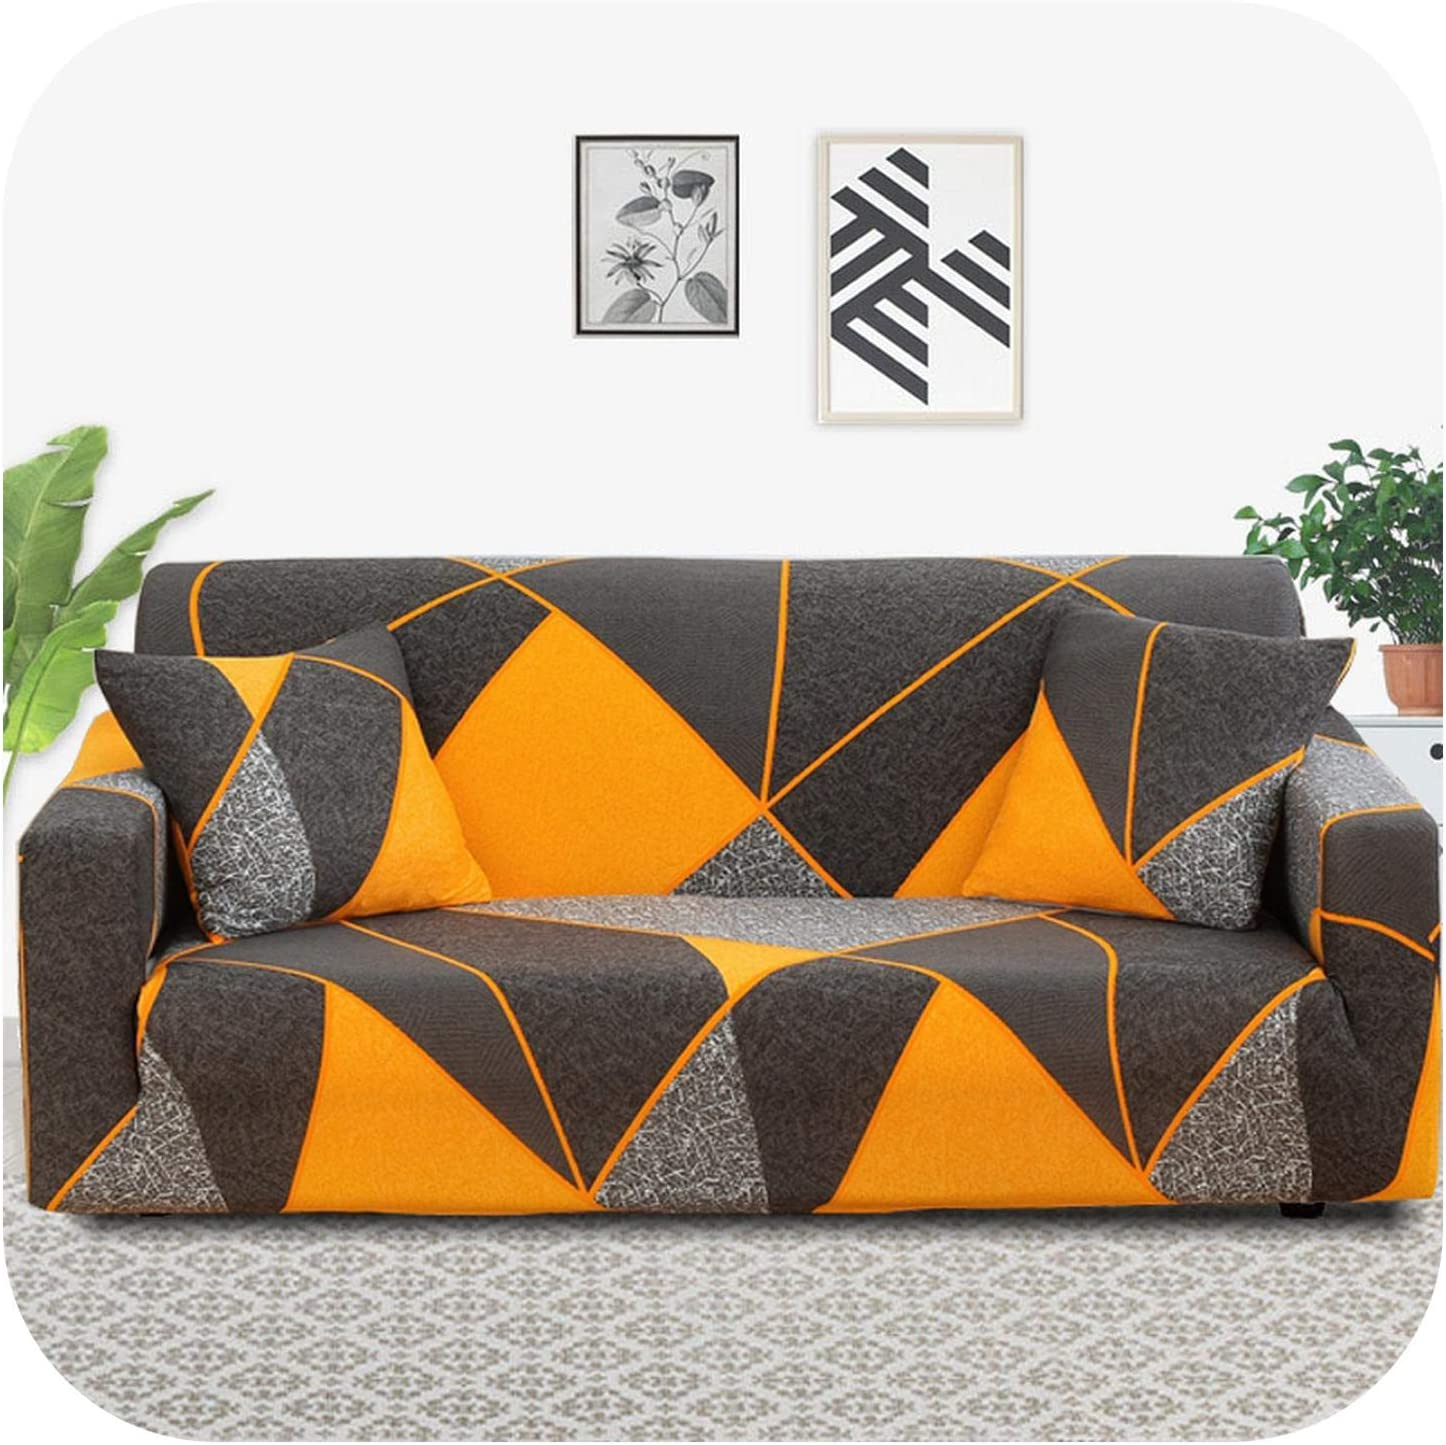 FAT SHEEP Pmxxy Geometric Sofa All stores are sold Cover Room for Spandex Ela Living Omaha Mall